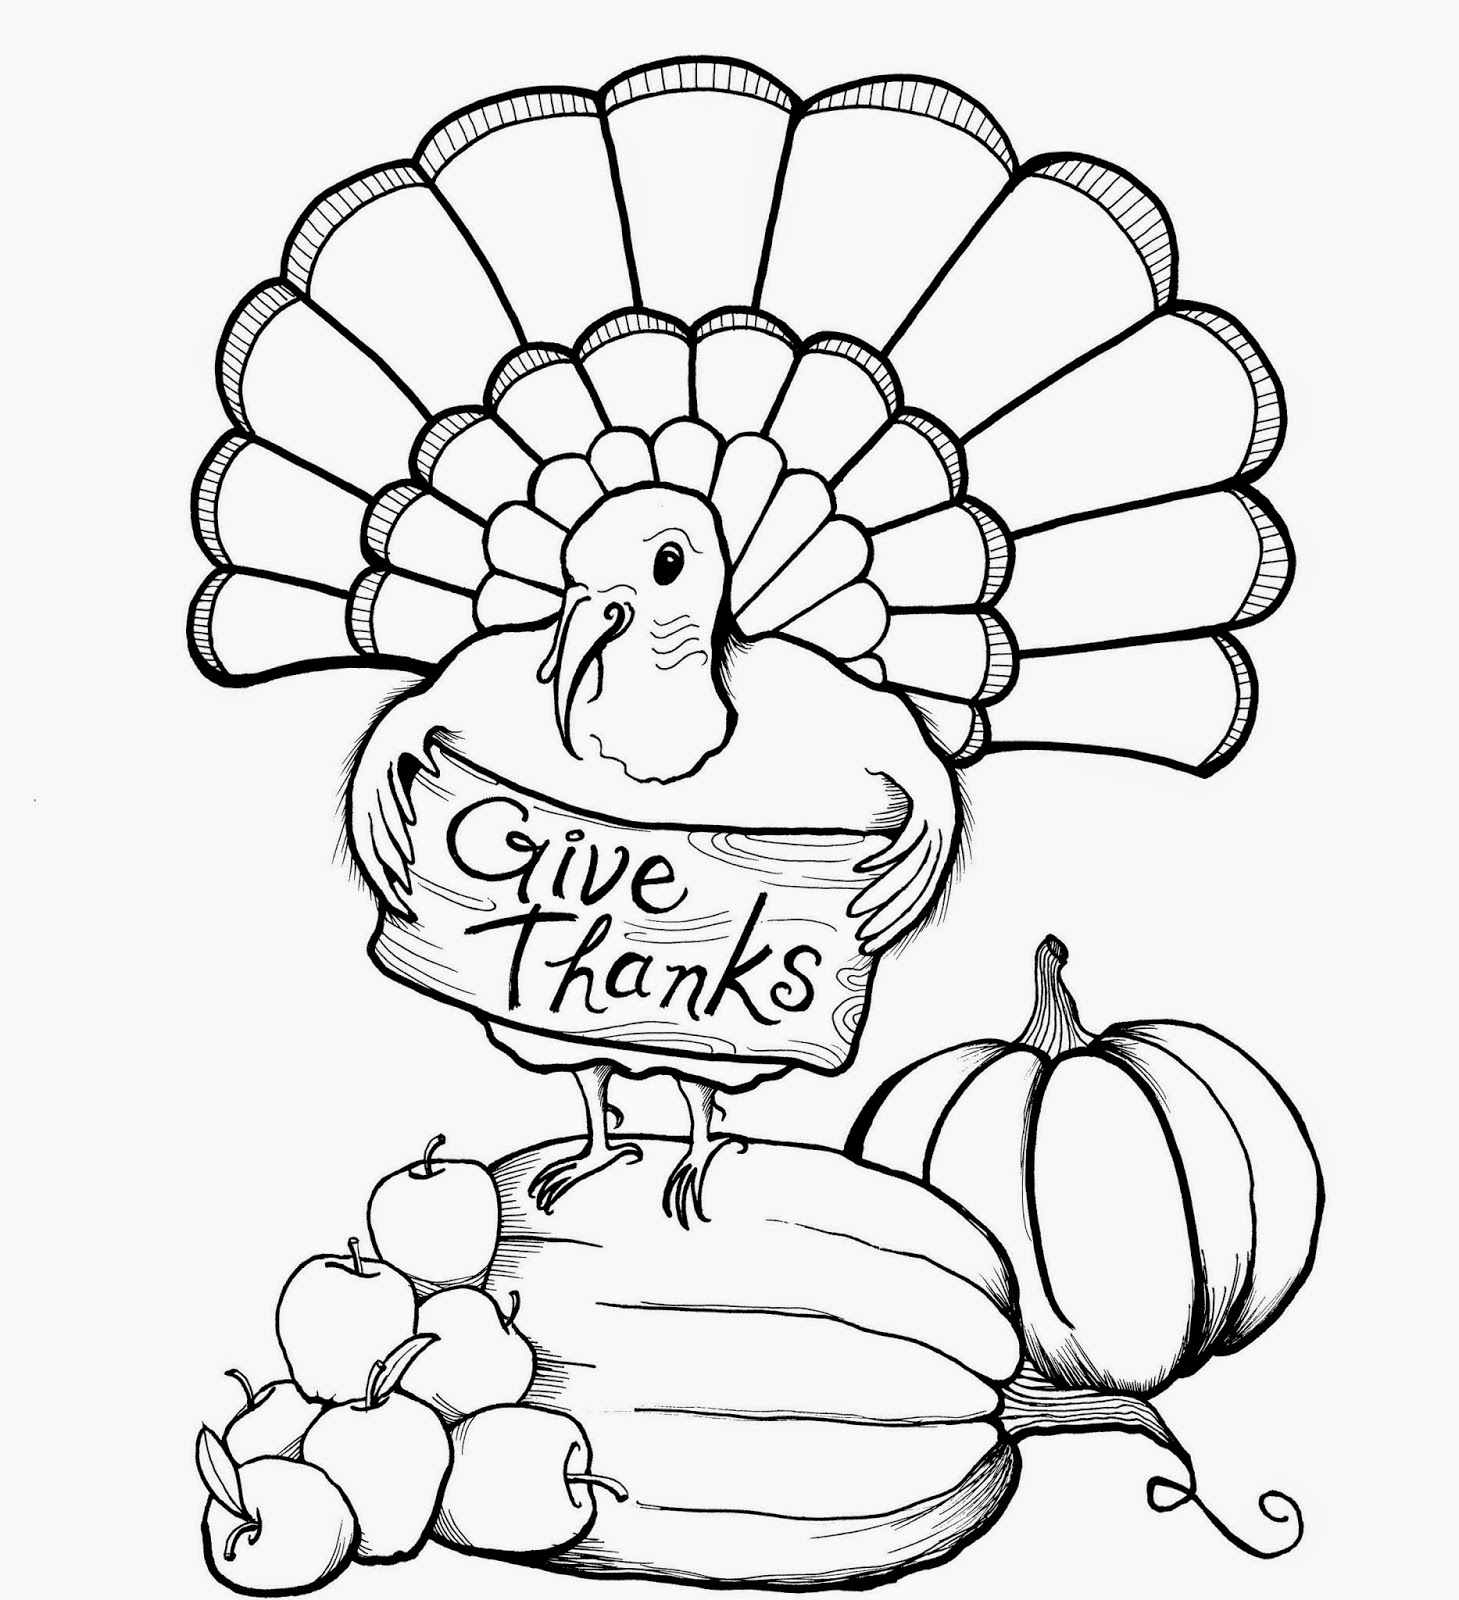 coloring printable turkey thanksgiving turkey coloring pages to print for kids turkey printable coloring